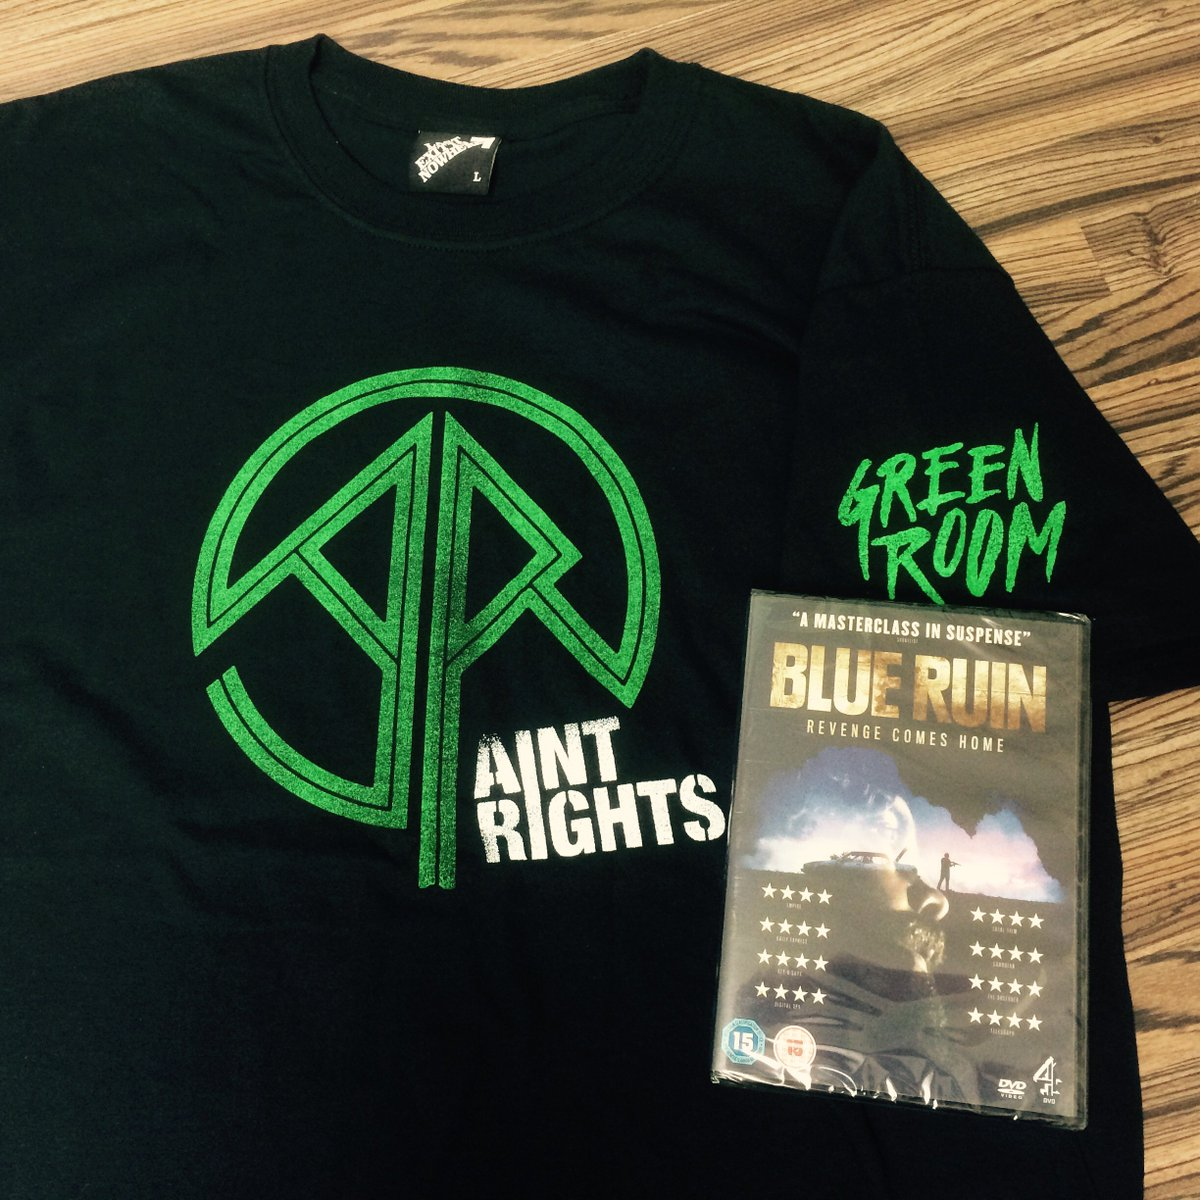 Want an Ain't Rights T from @LASTEXITshirts & #BlueRuin on DVD? RT to win! #GreenRoom https://t.co/KwD2CFAcu2